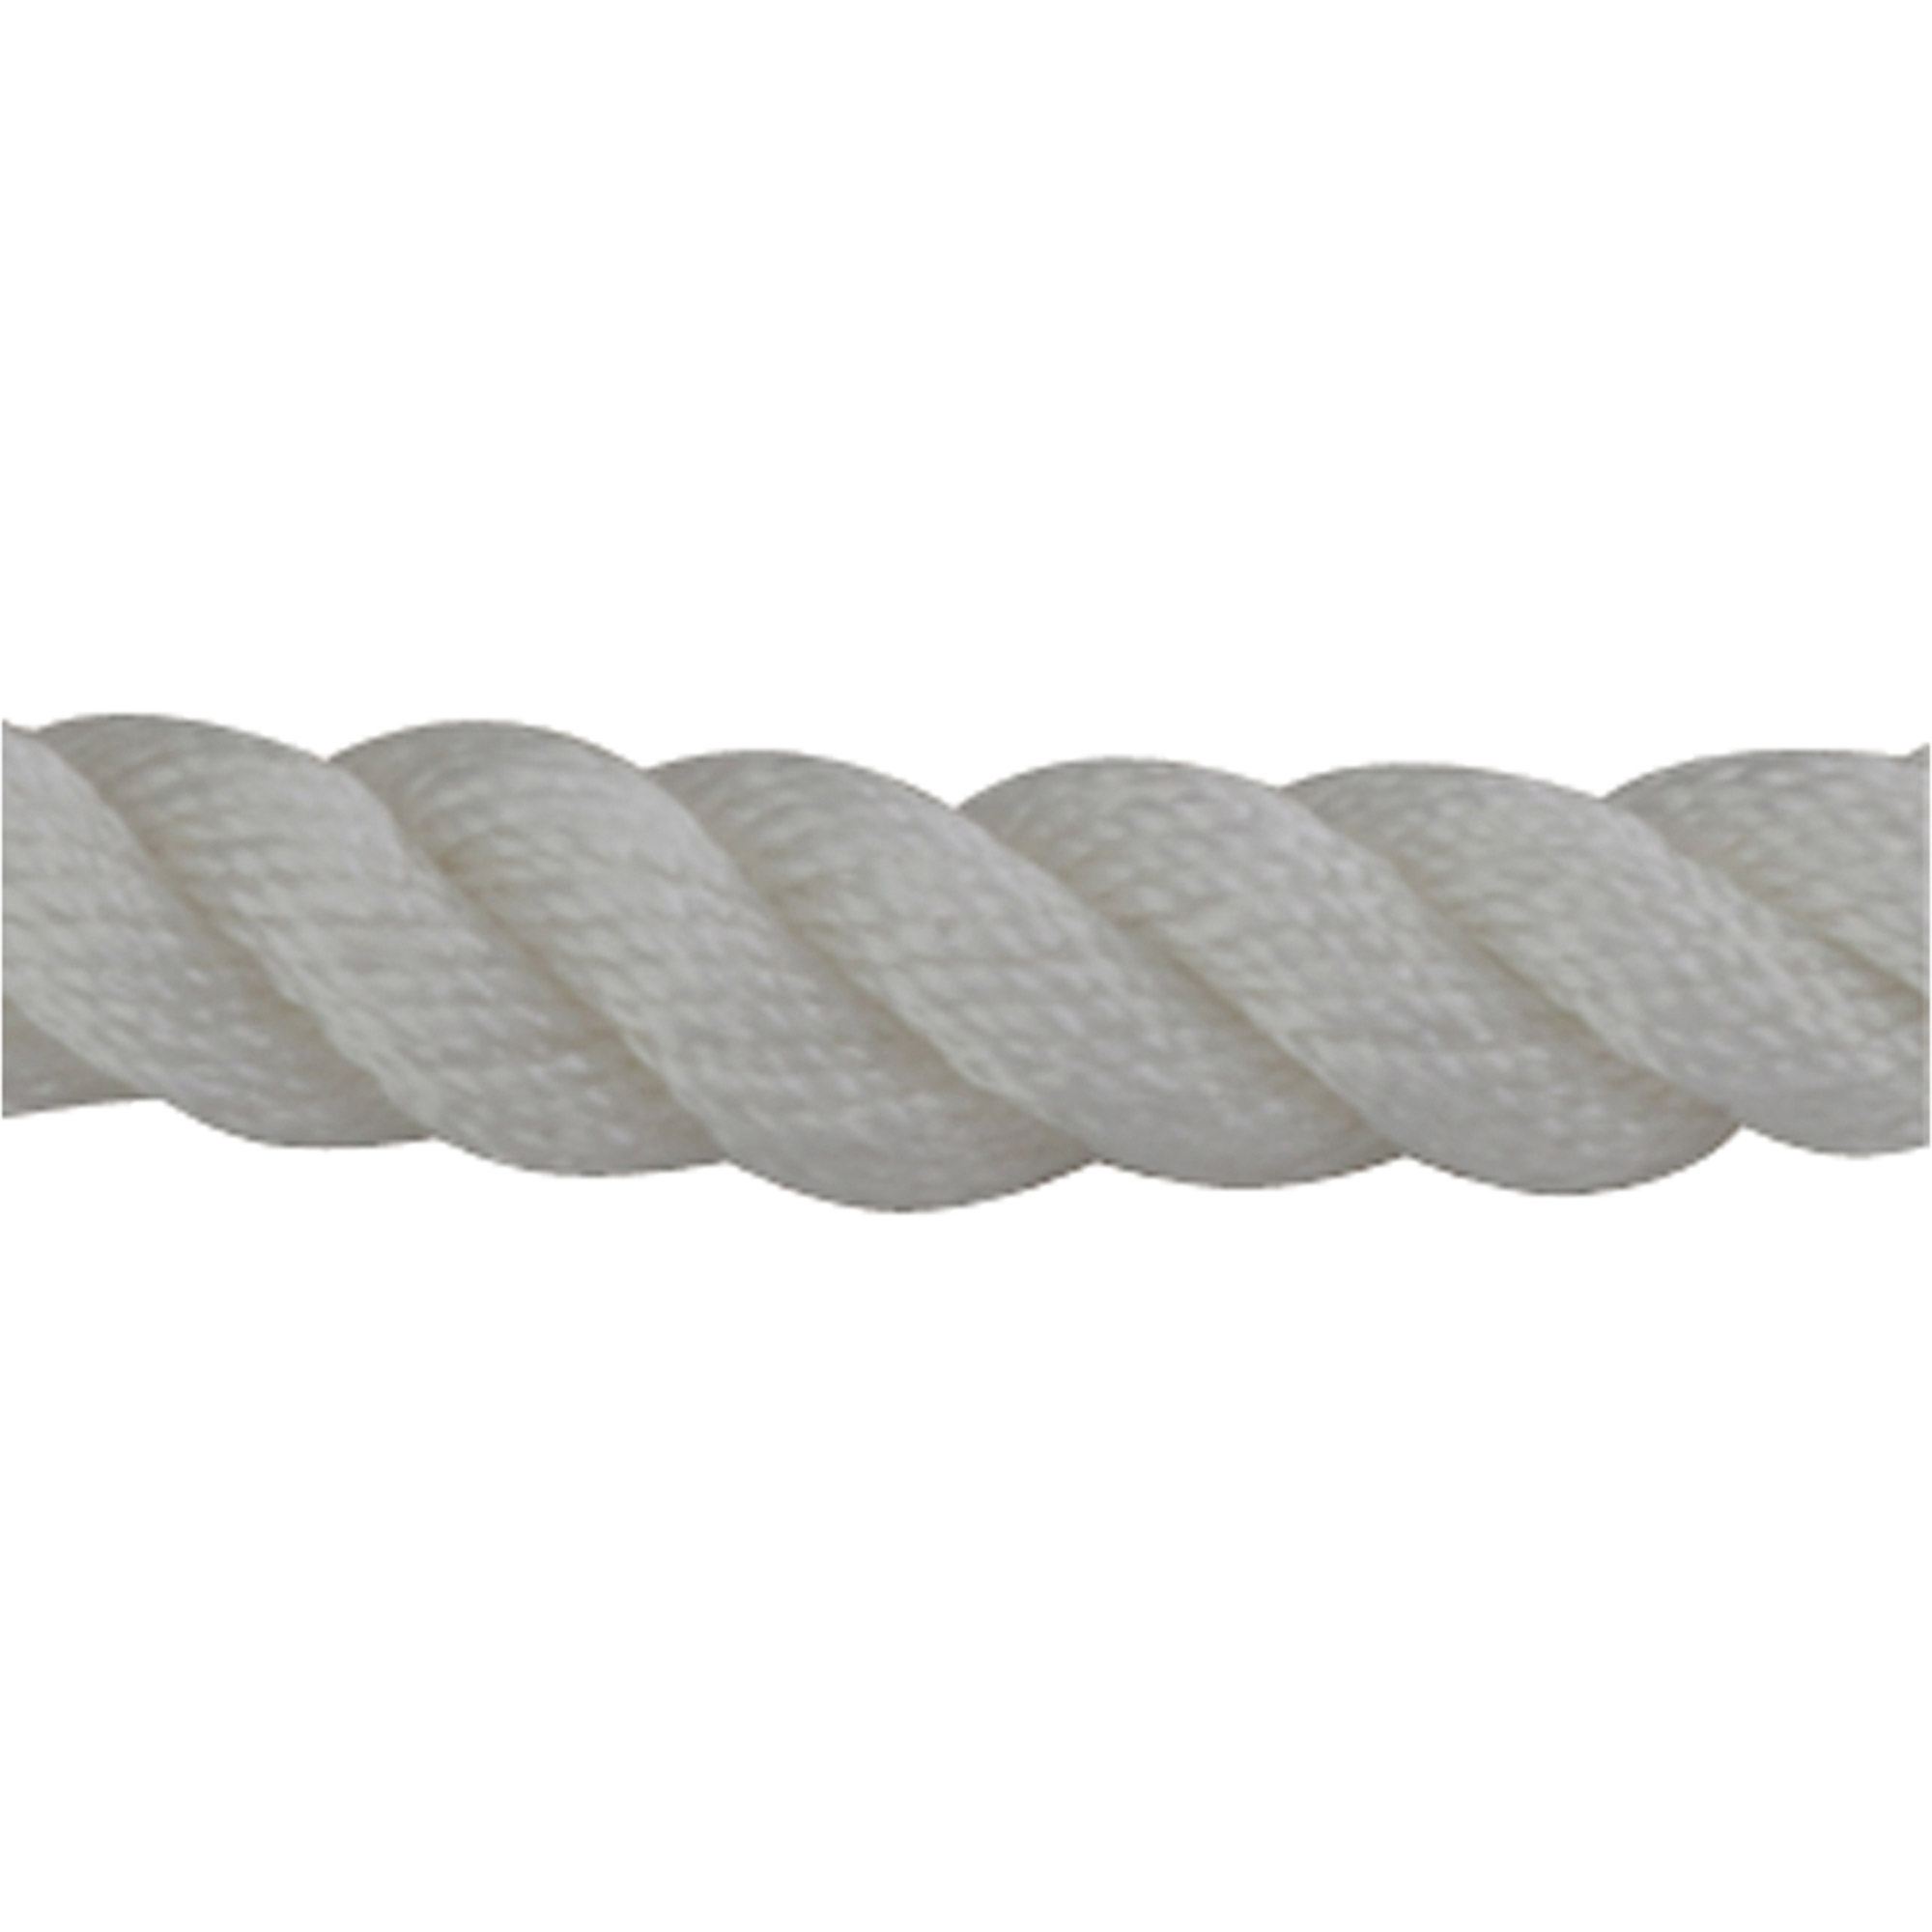 "Sea Dog Dock Line, Twisted Nylon, 3 8"" x 25', White by Sea-Dog Line"